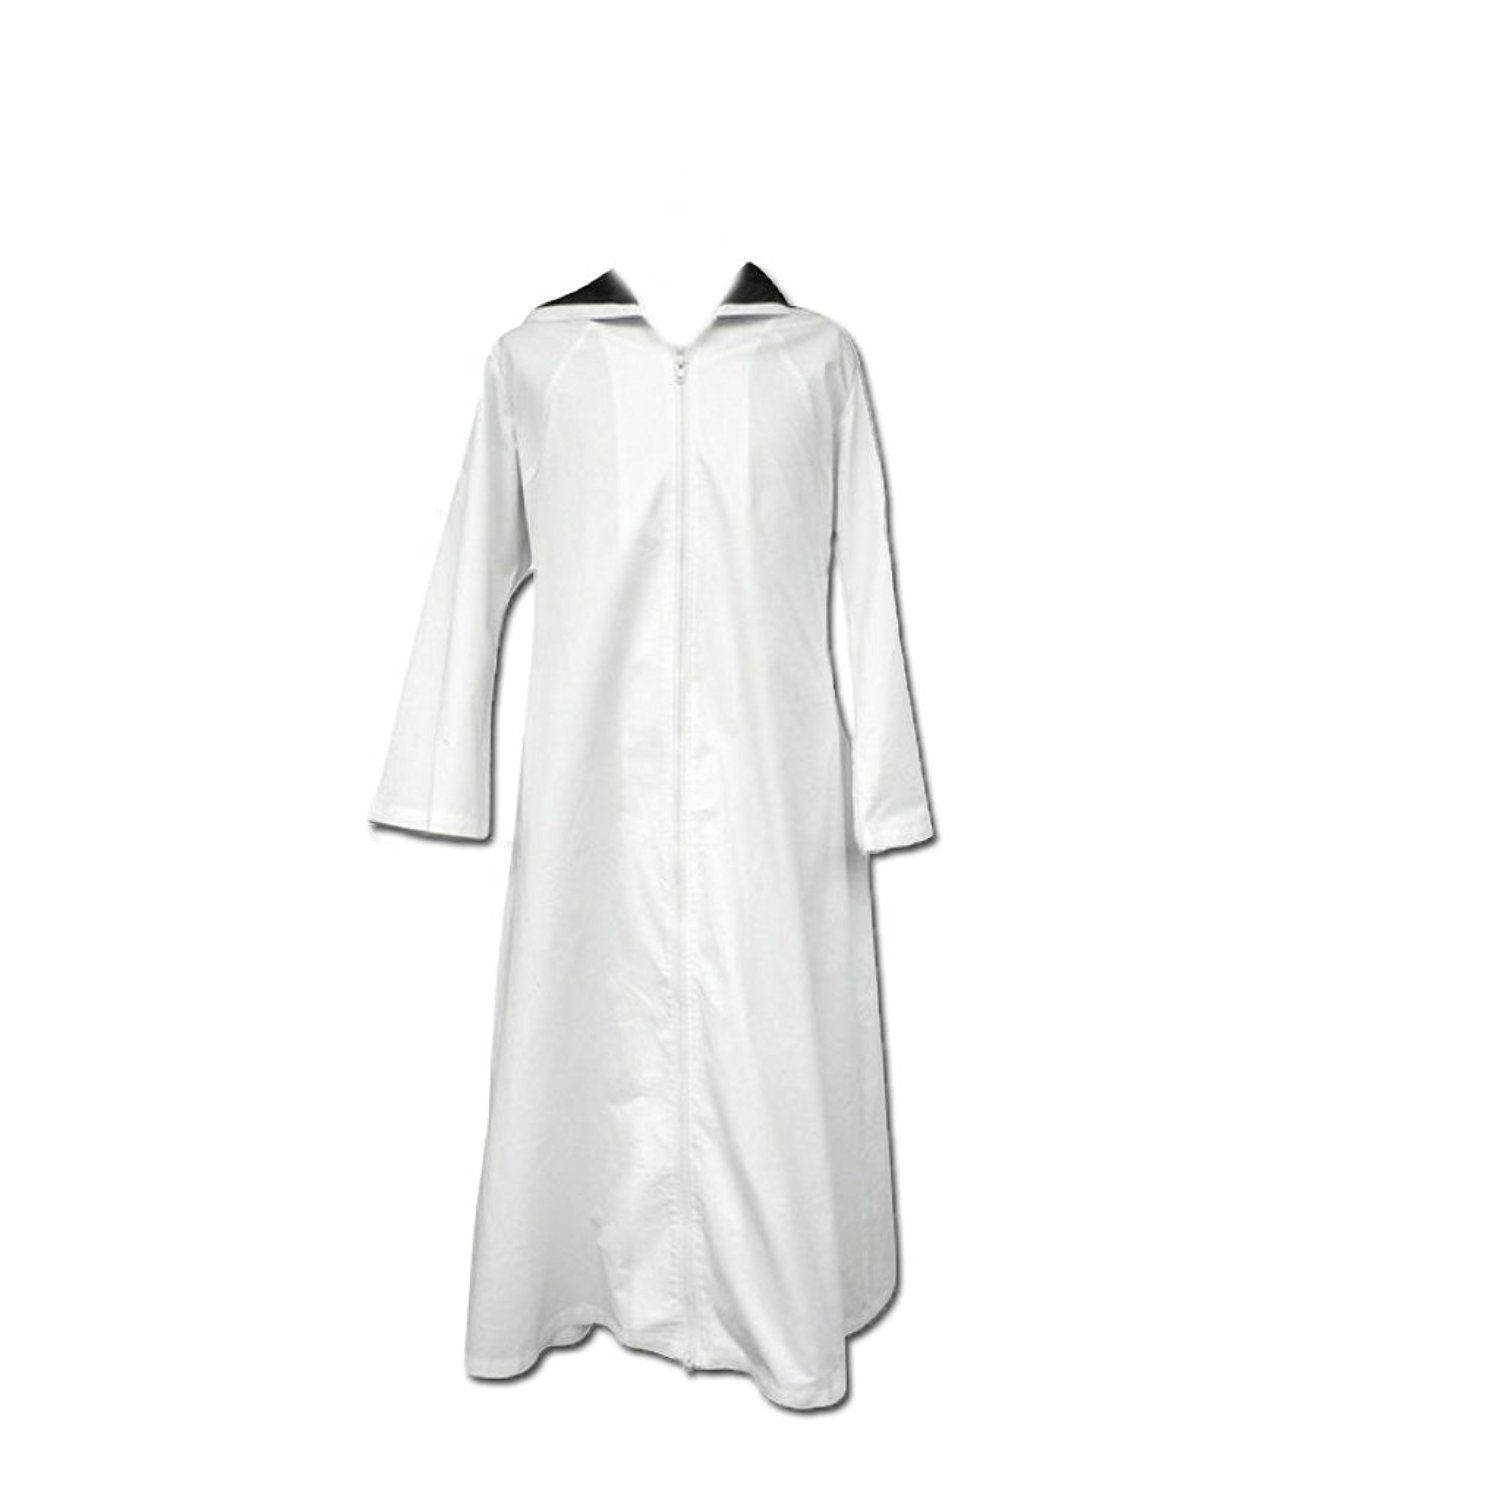 Naruto Cosplay Costume -ANBU Cloak 1st -White XX-Large >>> You can get additional details at the image link.